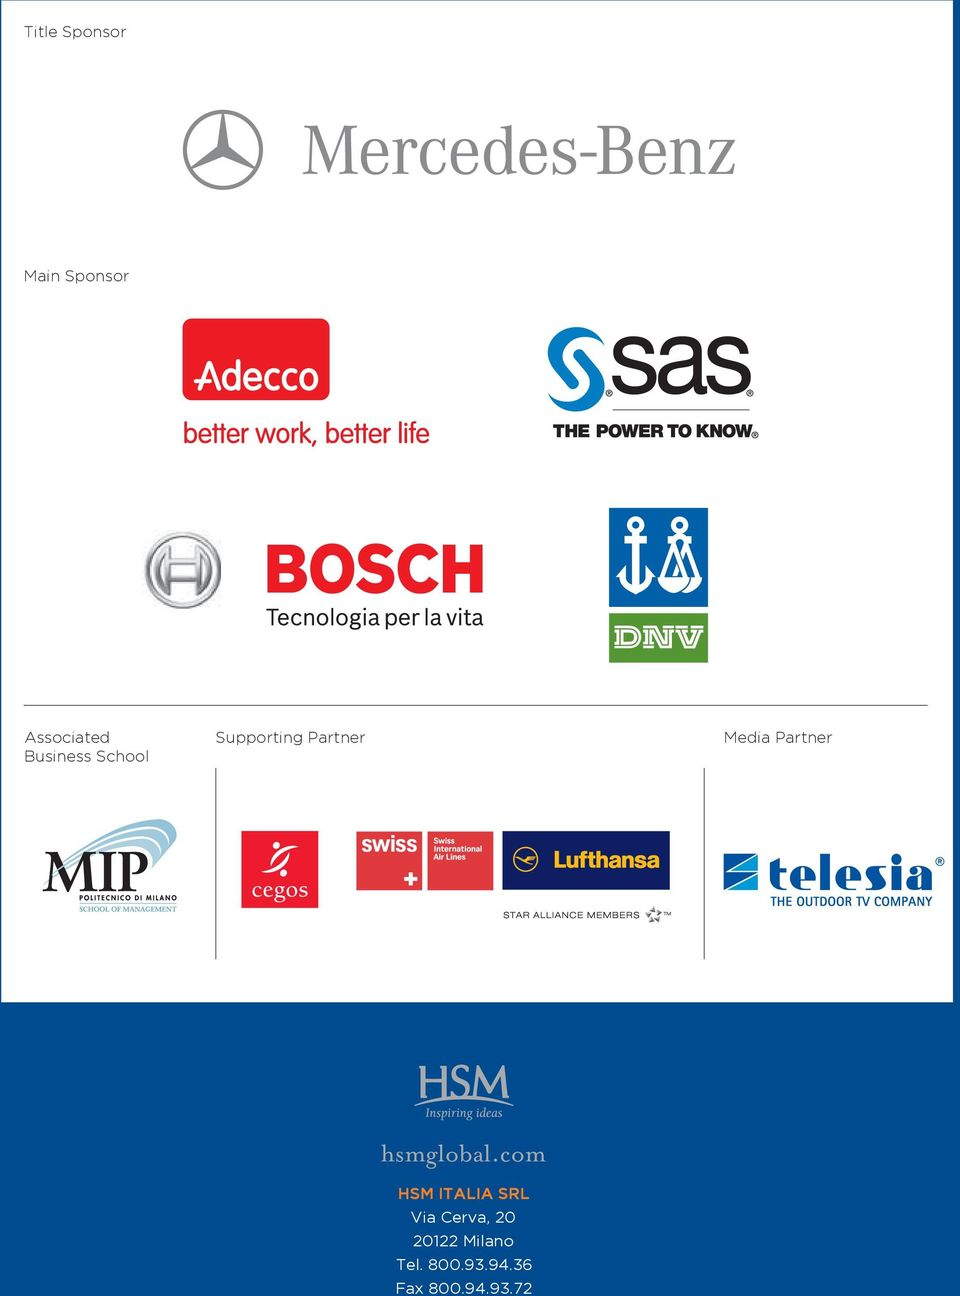 Partner hsmglobal.